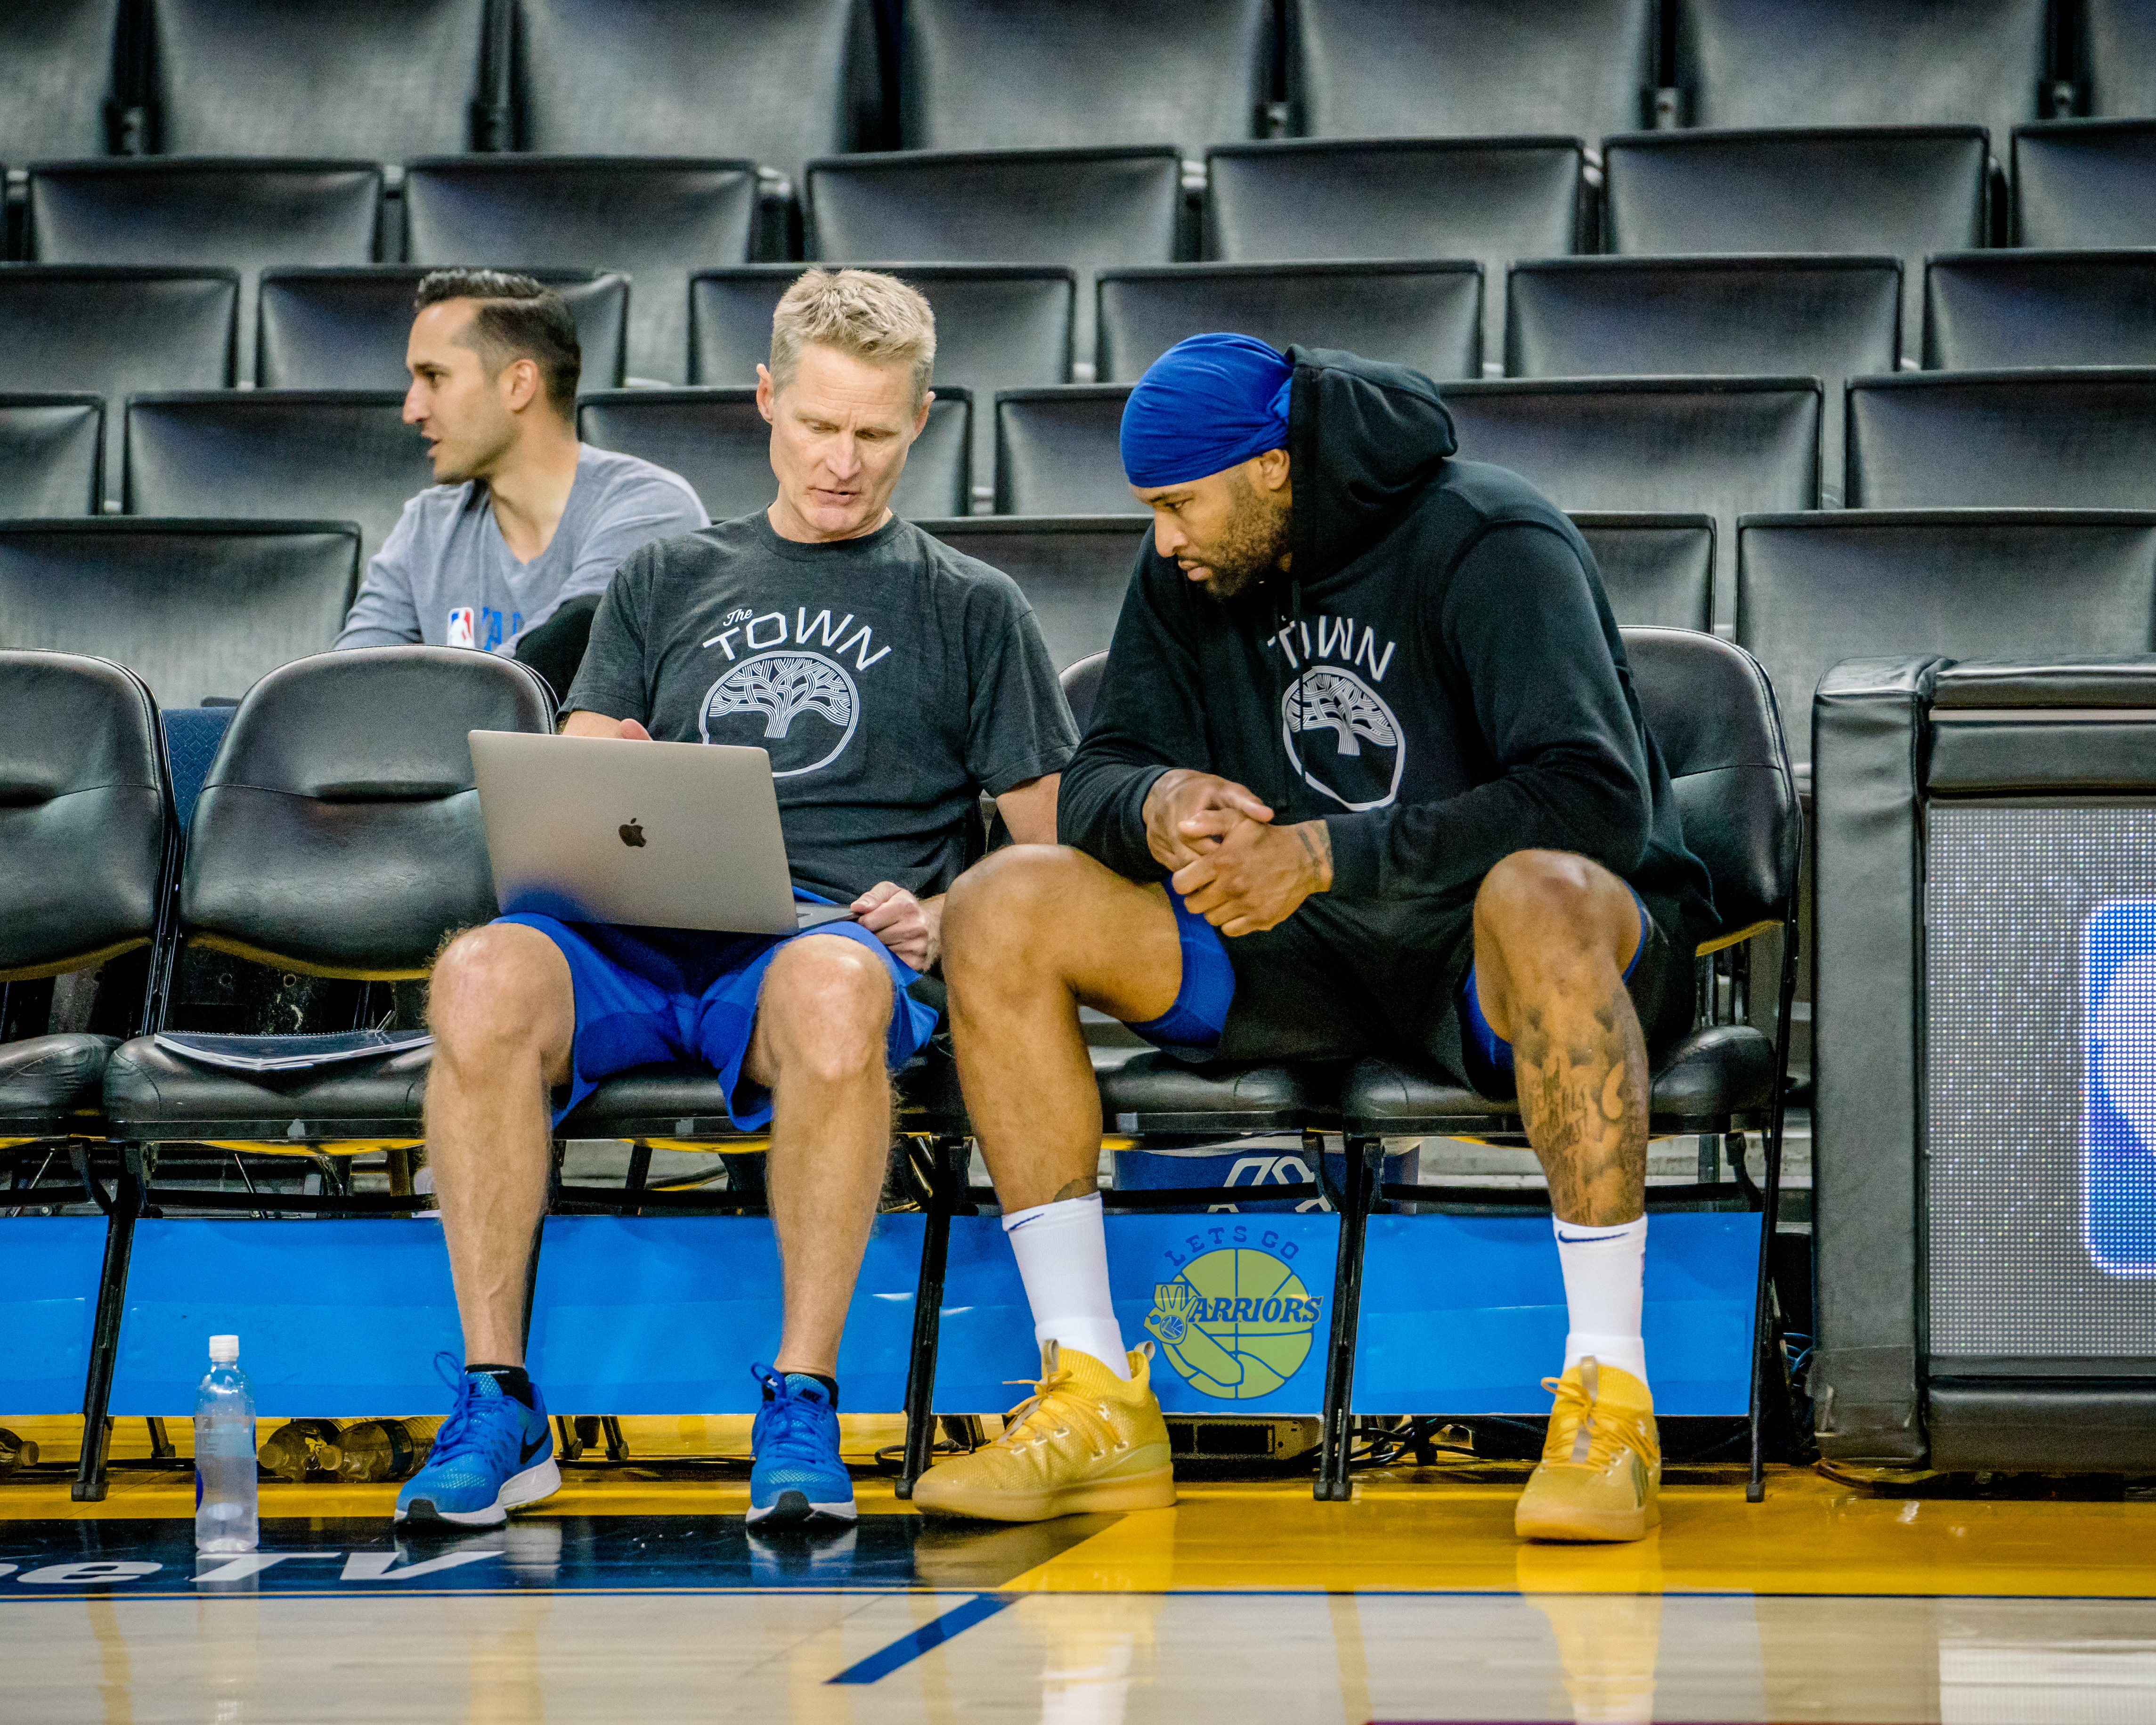 [PHOTO GALLERY + SLIDESHOW] Warriors Practice before Game 6 NBA Finals